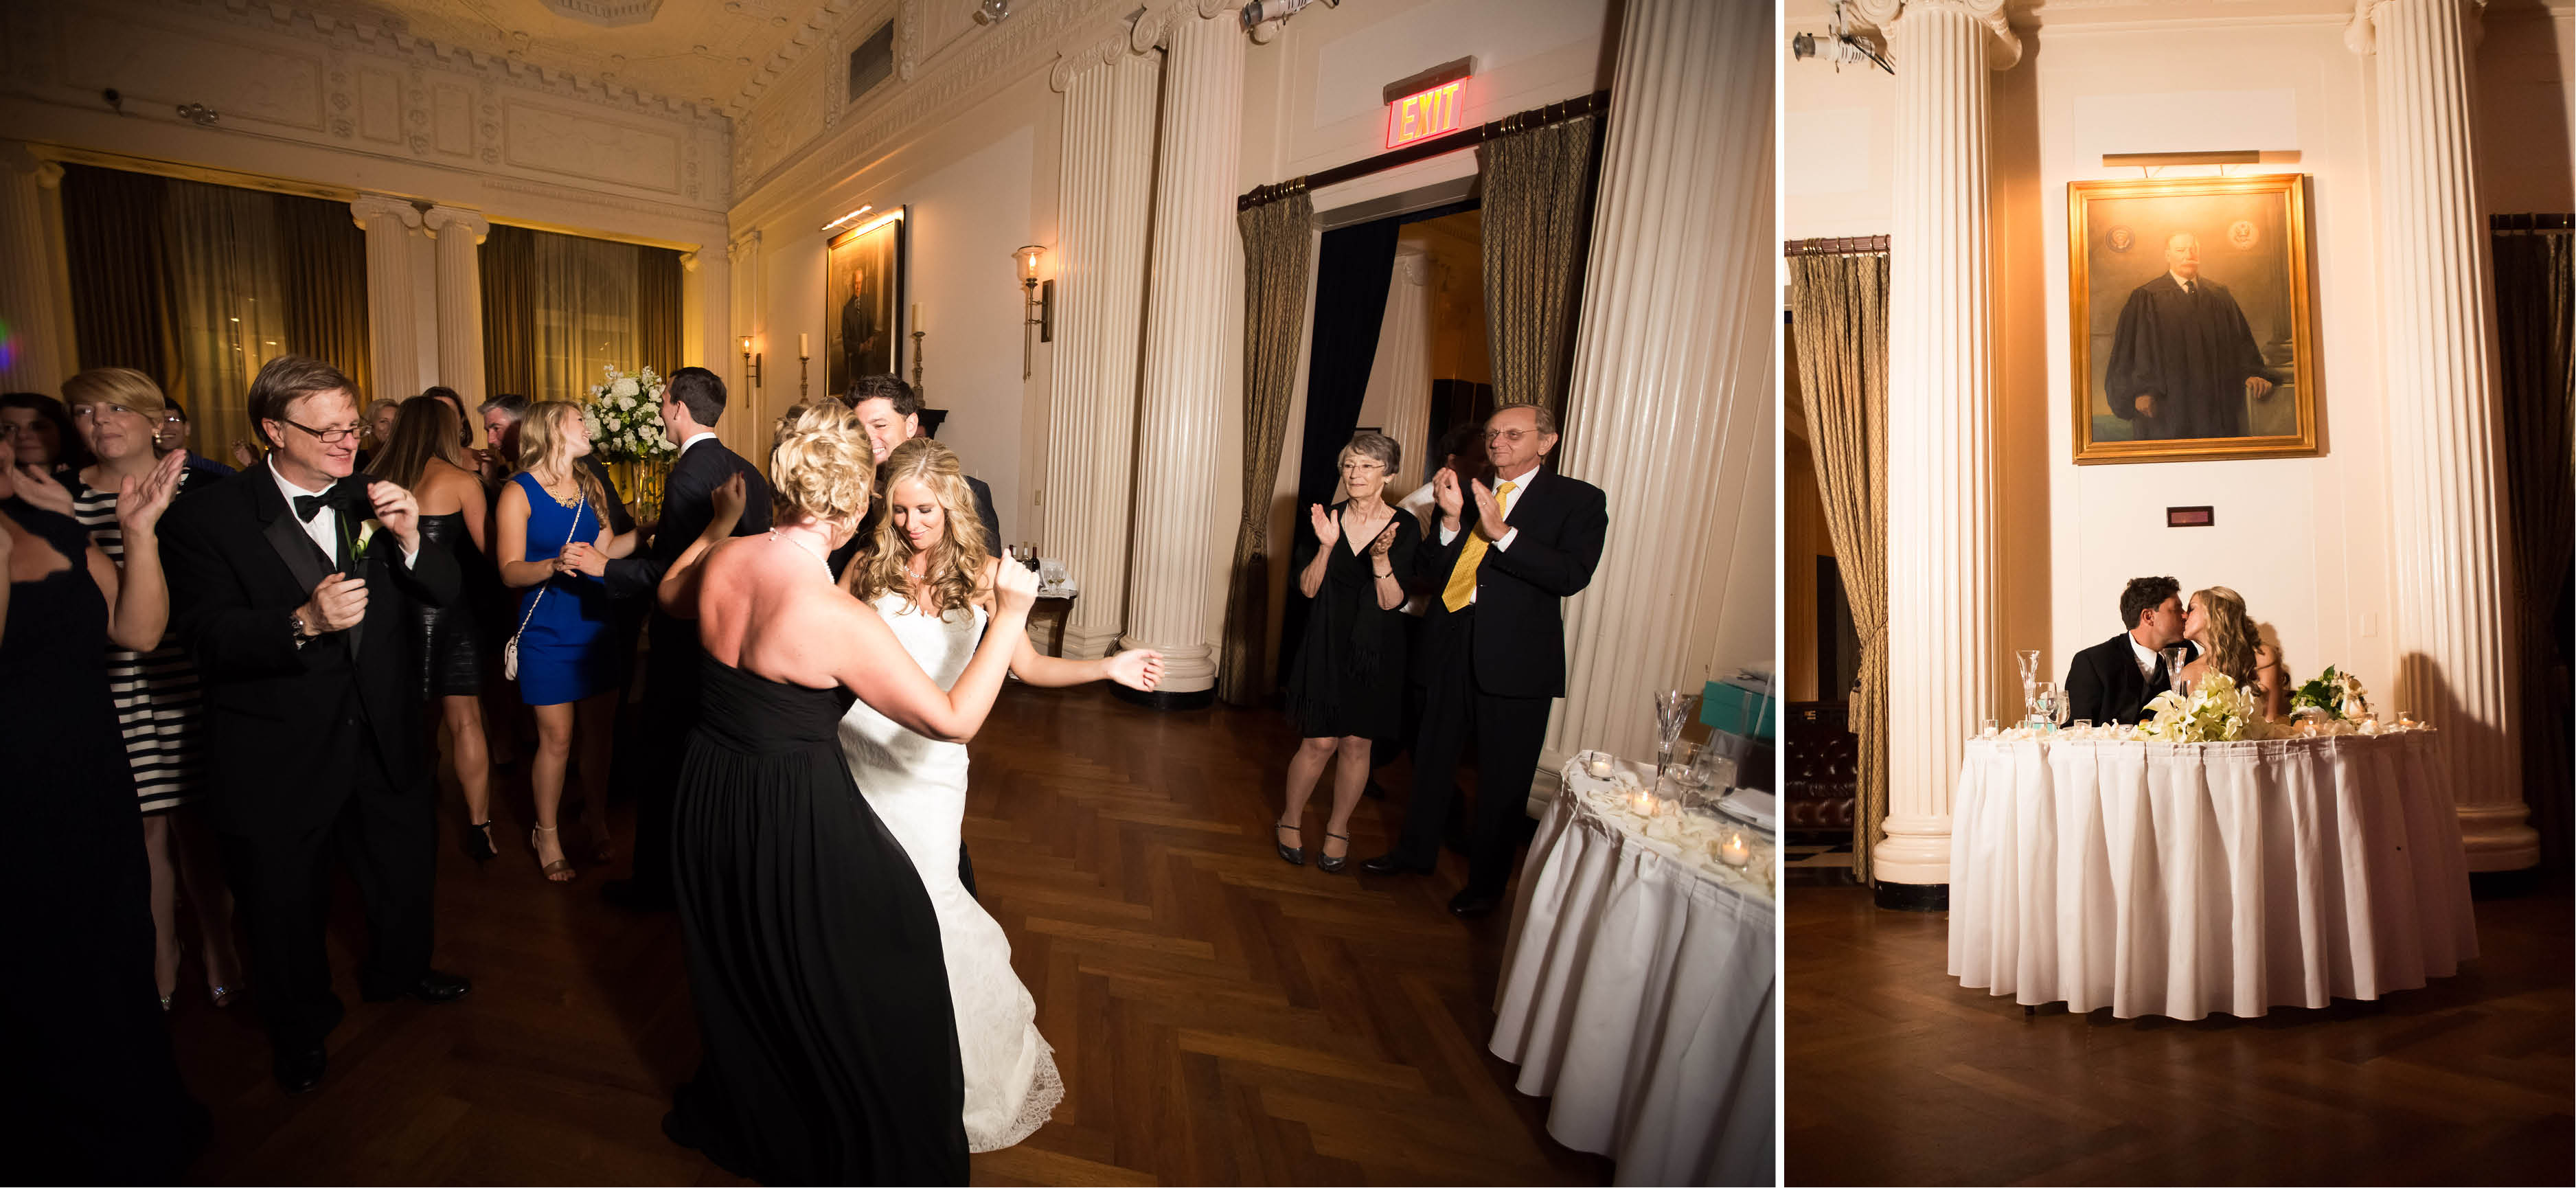 Yale club wedding34